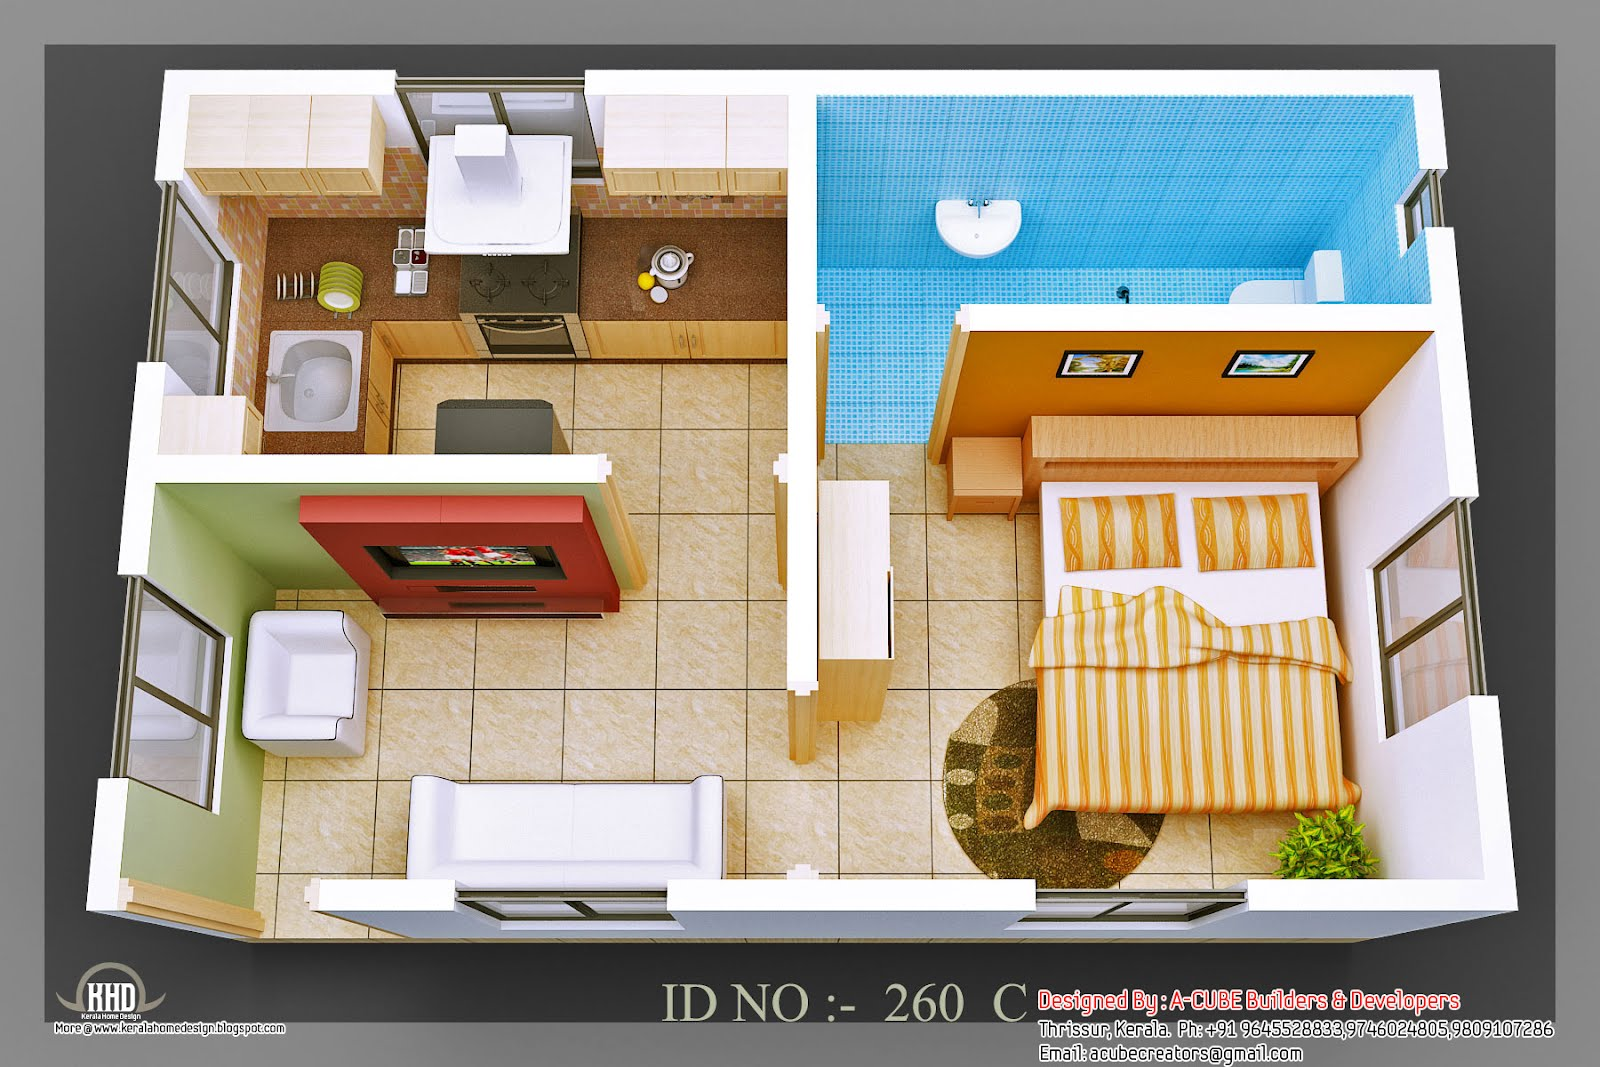 Craig's house Isometric-home-3dview-06